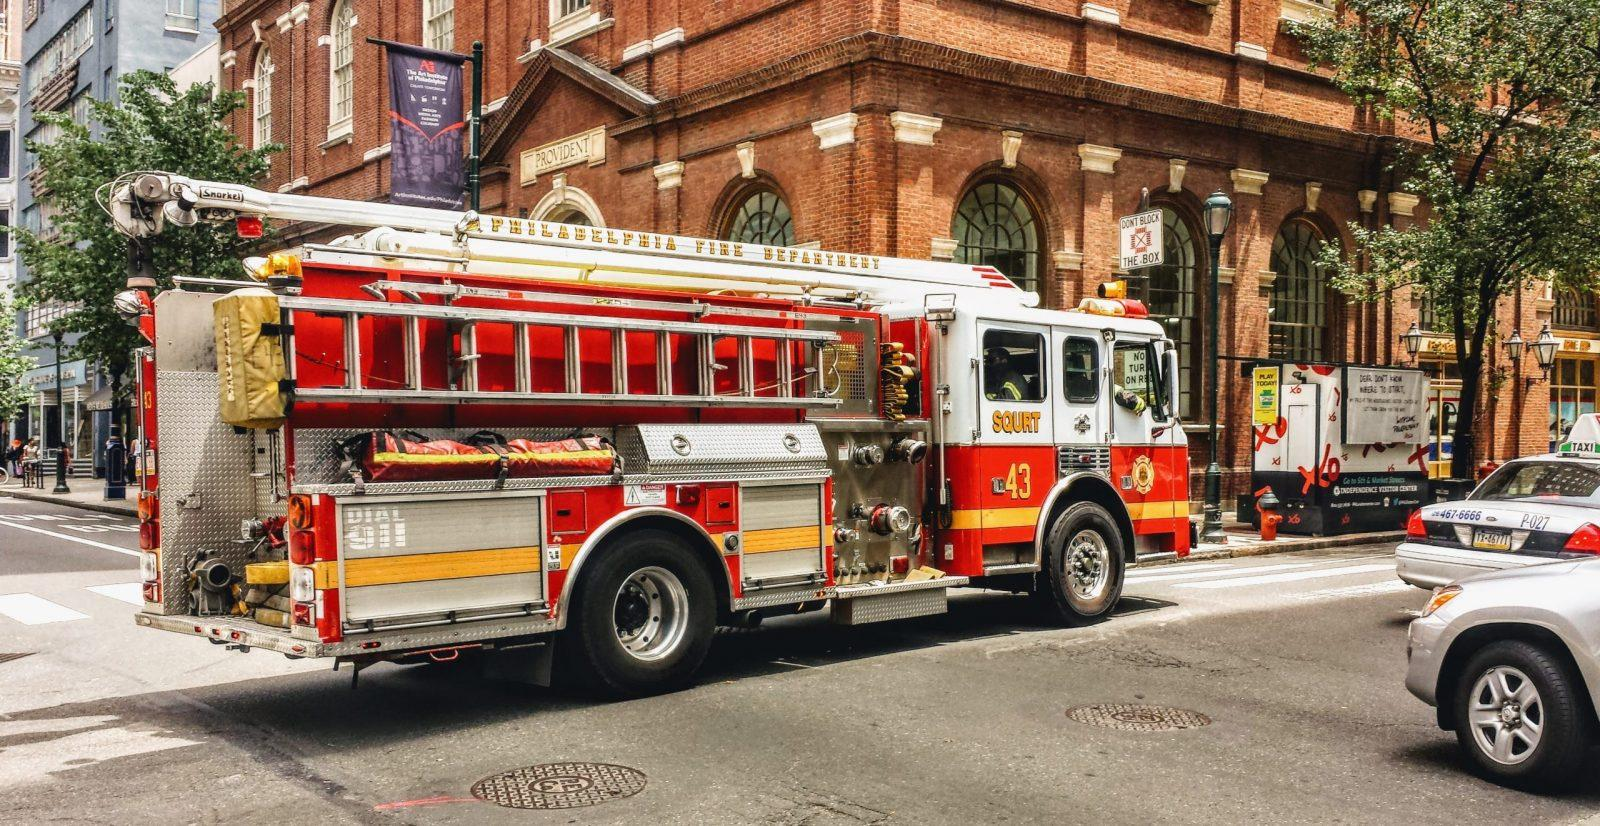 Emergency vehicle responding to a business or workplace incident